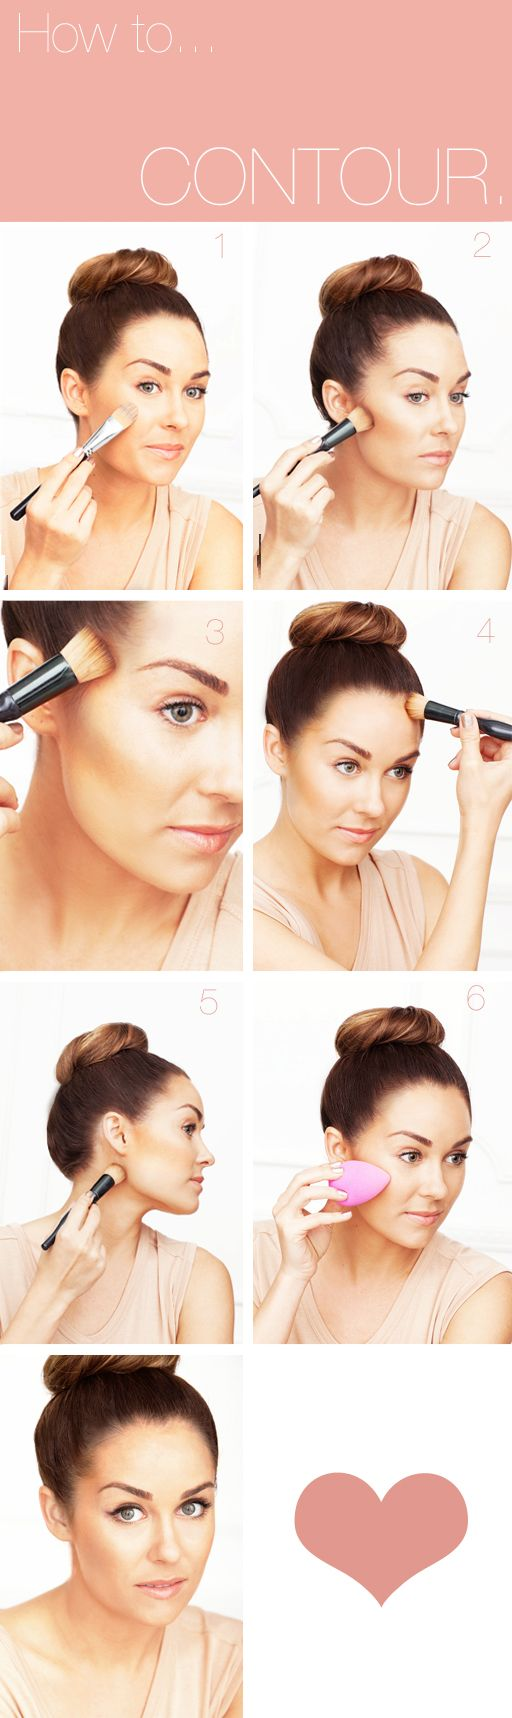 It Always Surprises Me That For Most Women, Contouring Is Often A Skipped  Step When Makeup Tip! Always Apply Foundation First